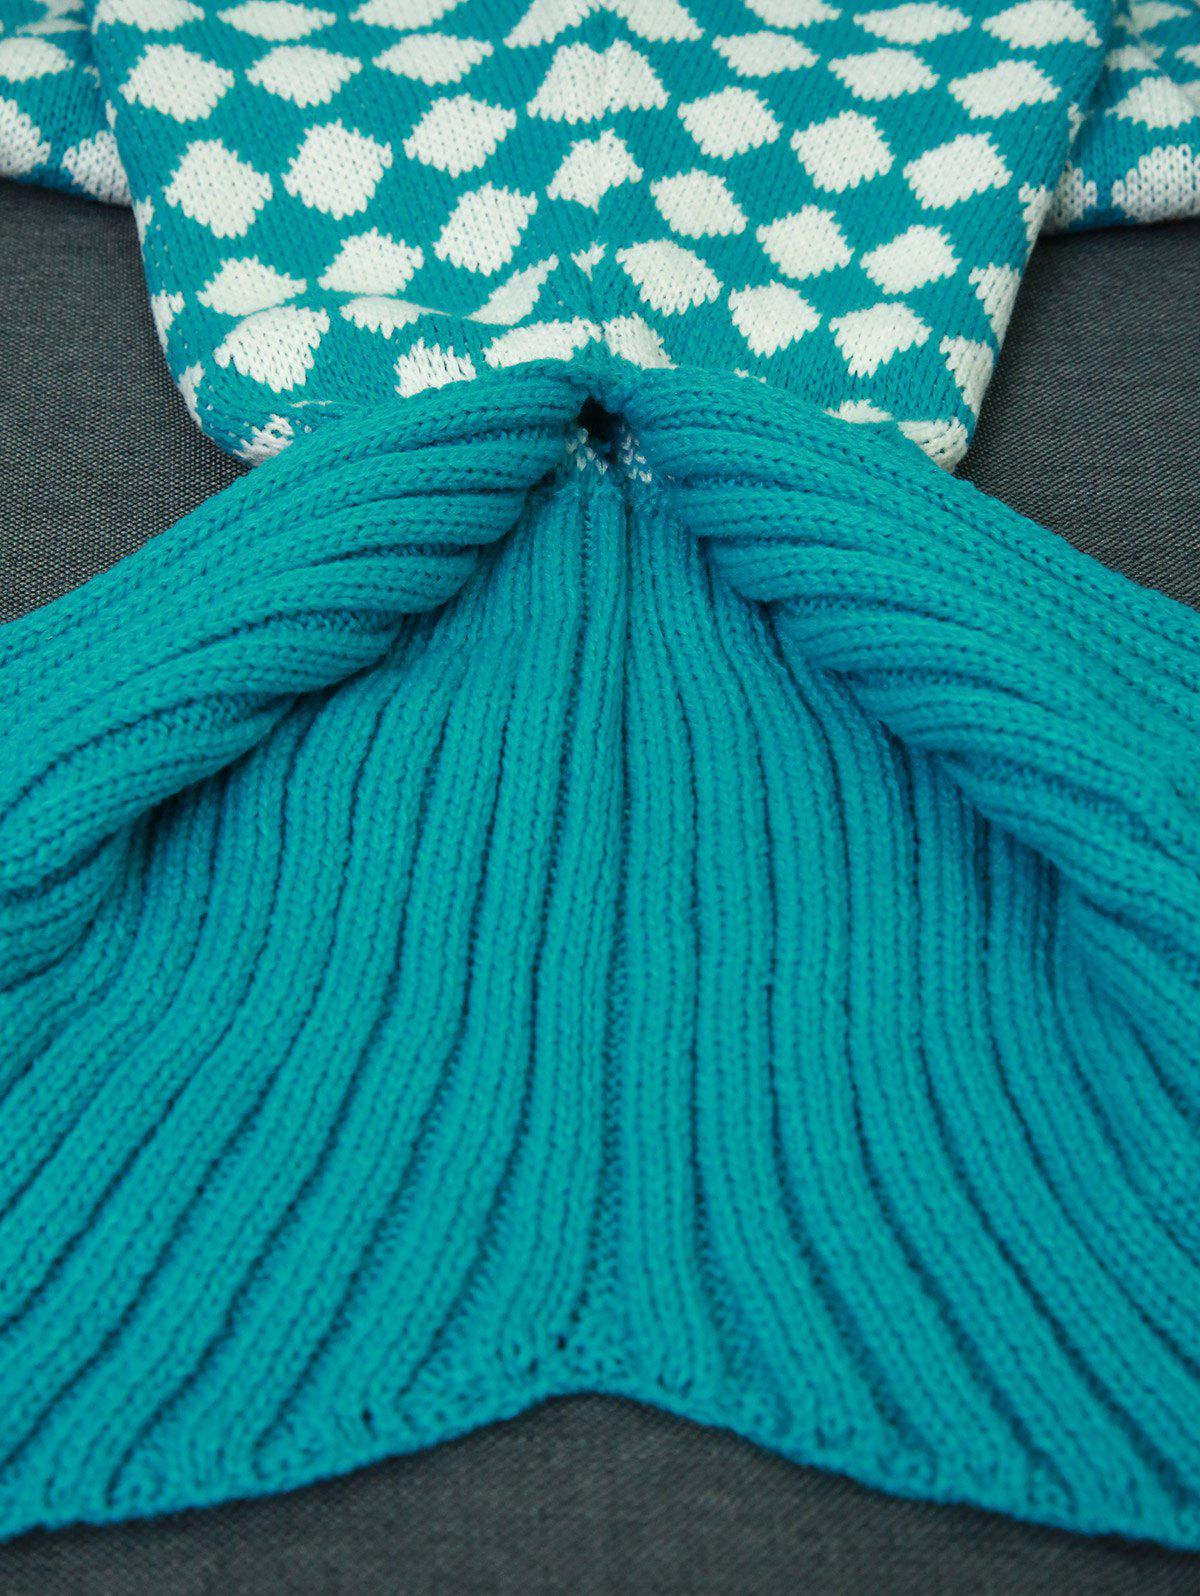 High Quality Inclined Plaid Pattern Knitted Mermaid Tail Blanket - LAKE BLUE